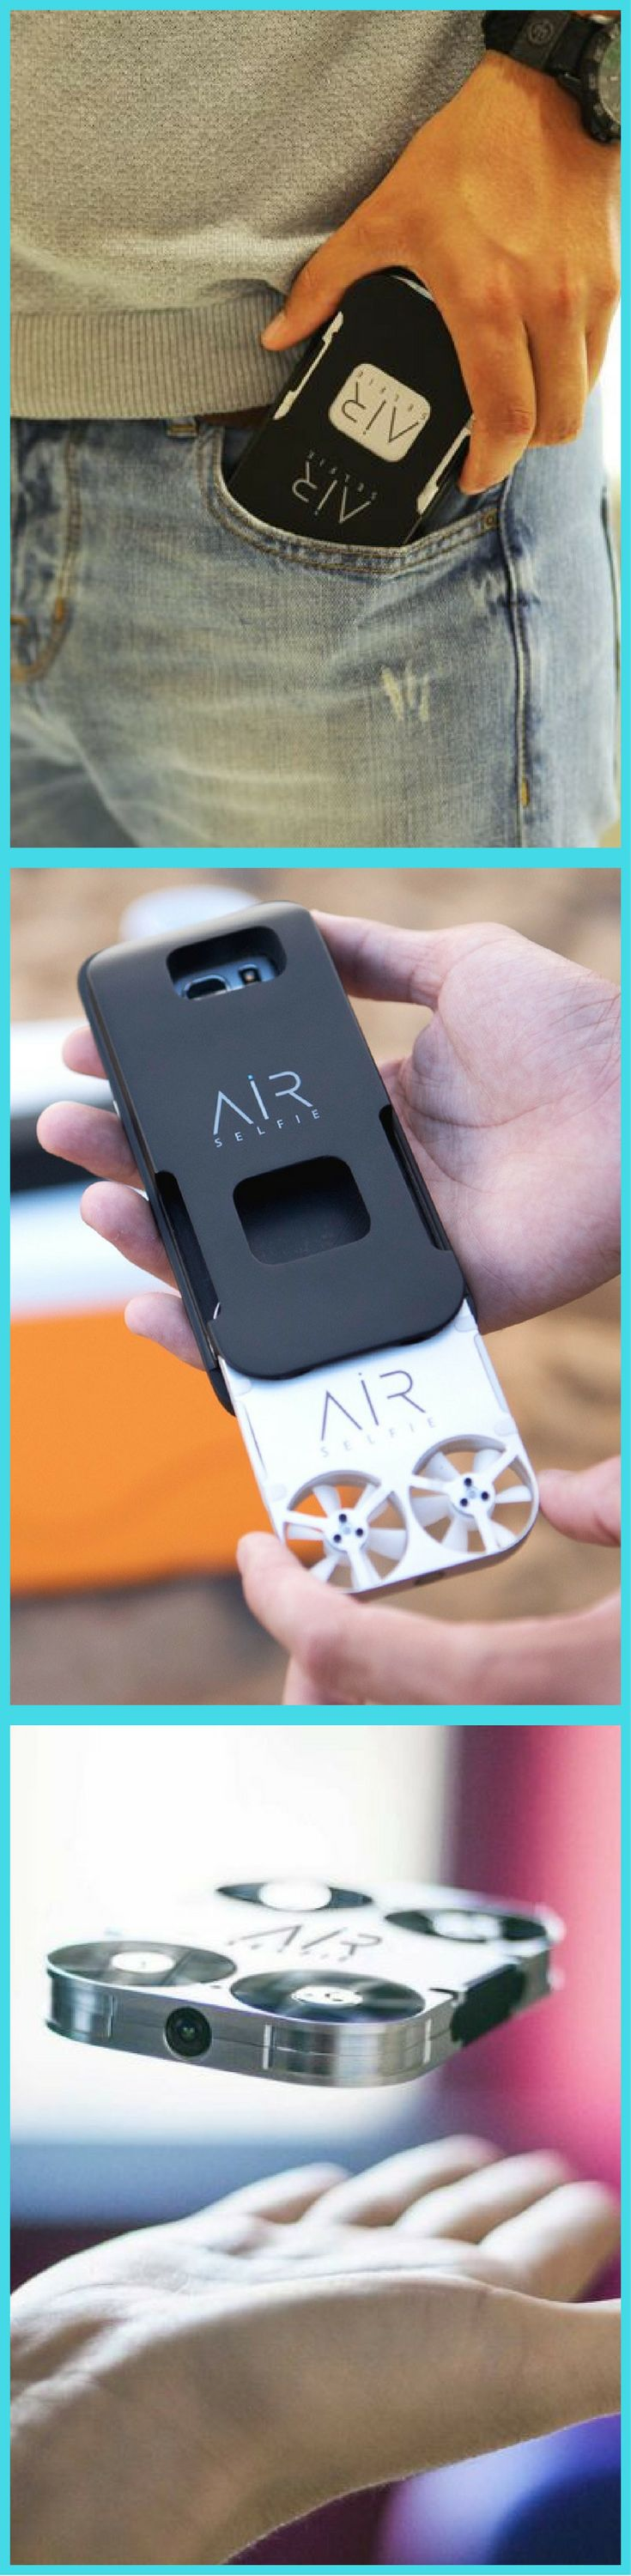 AirSelfie is Here! It's a new era in Personal Drones! Take your #airselfie anywhere and everywhere you go! Its the size of a phone and fits in your pocket with your iphone or with Samsung edge 7 . Never leave home without your #drone. Available on Amazon!